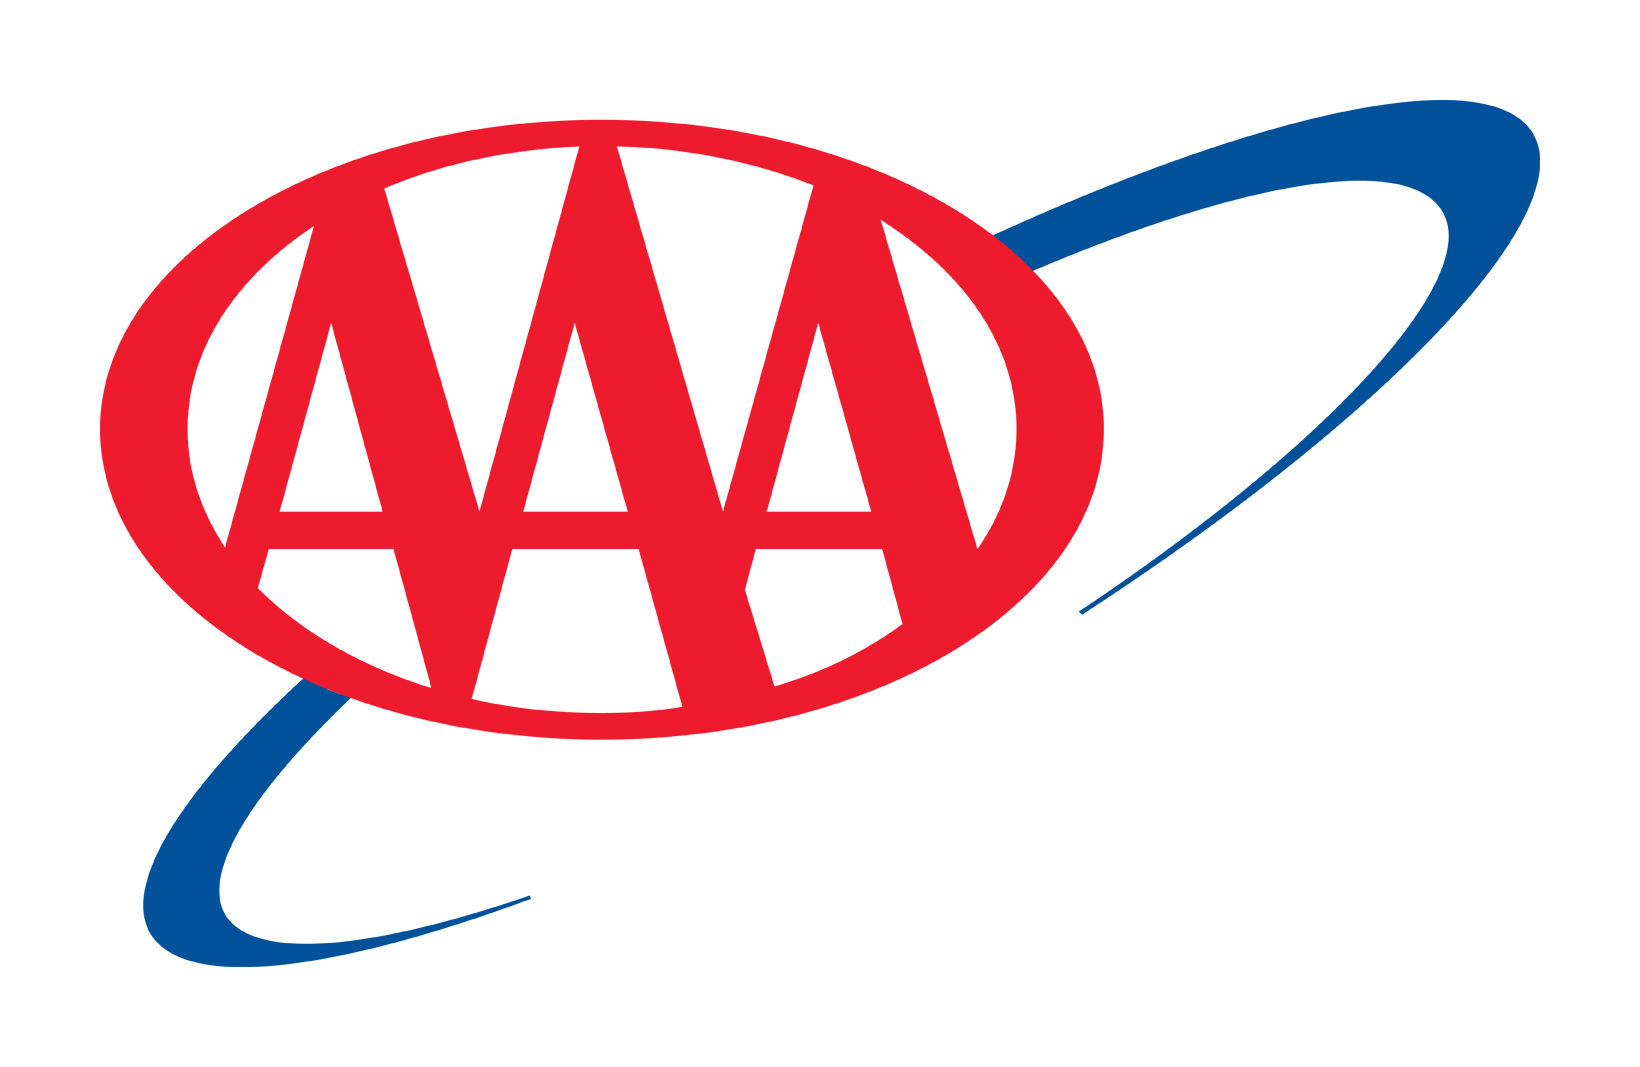 Did You Know?All Pat's Towing drivers are AAA background checked annually!